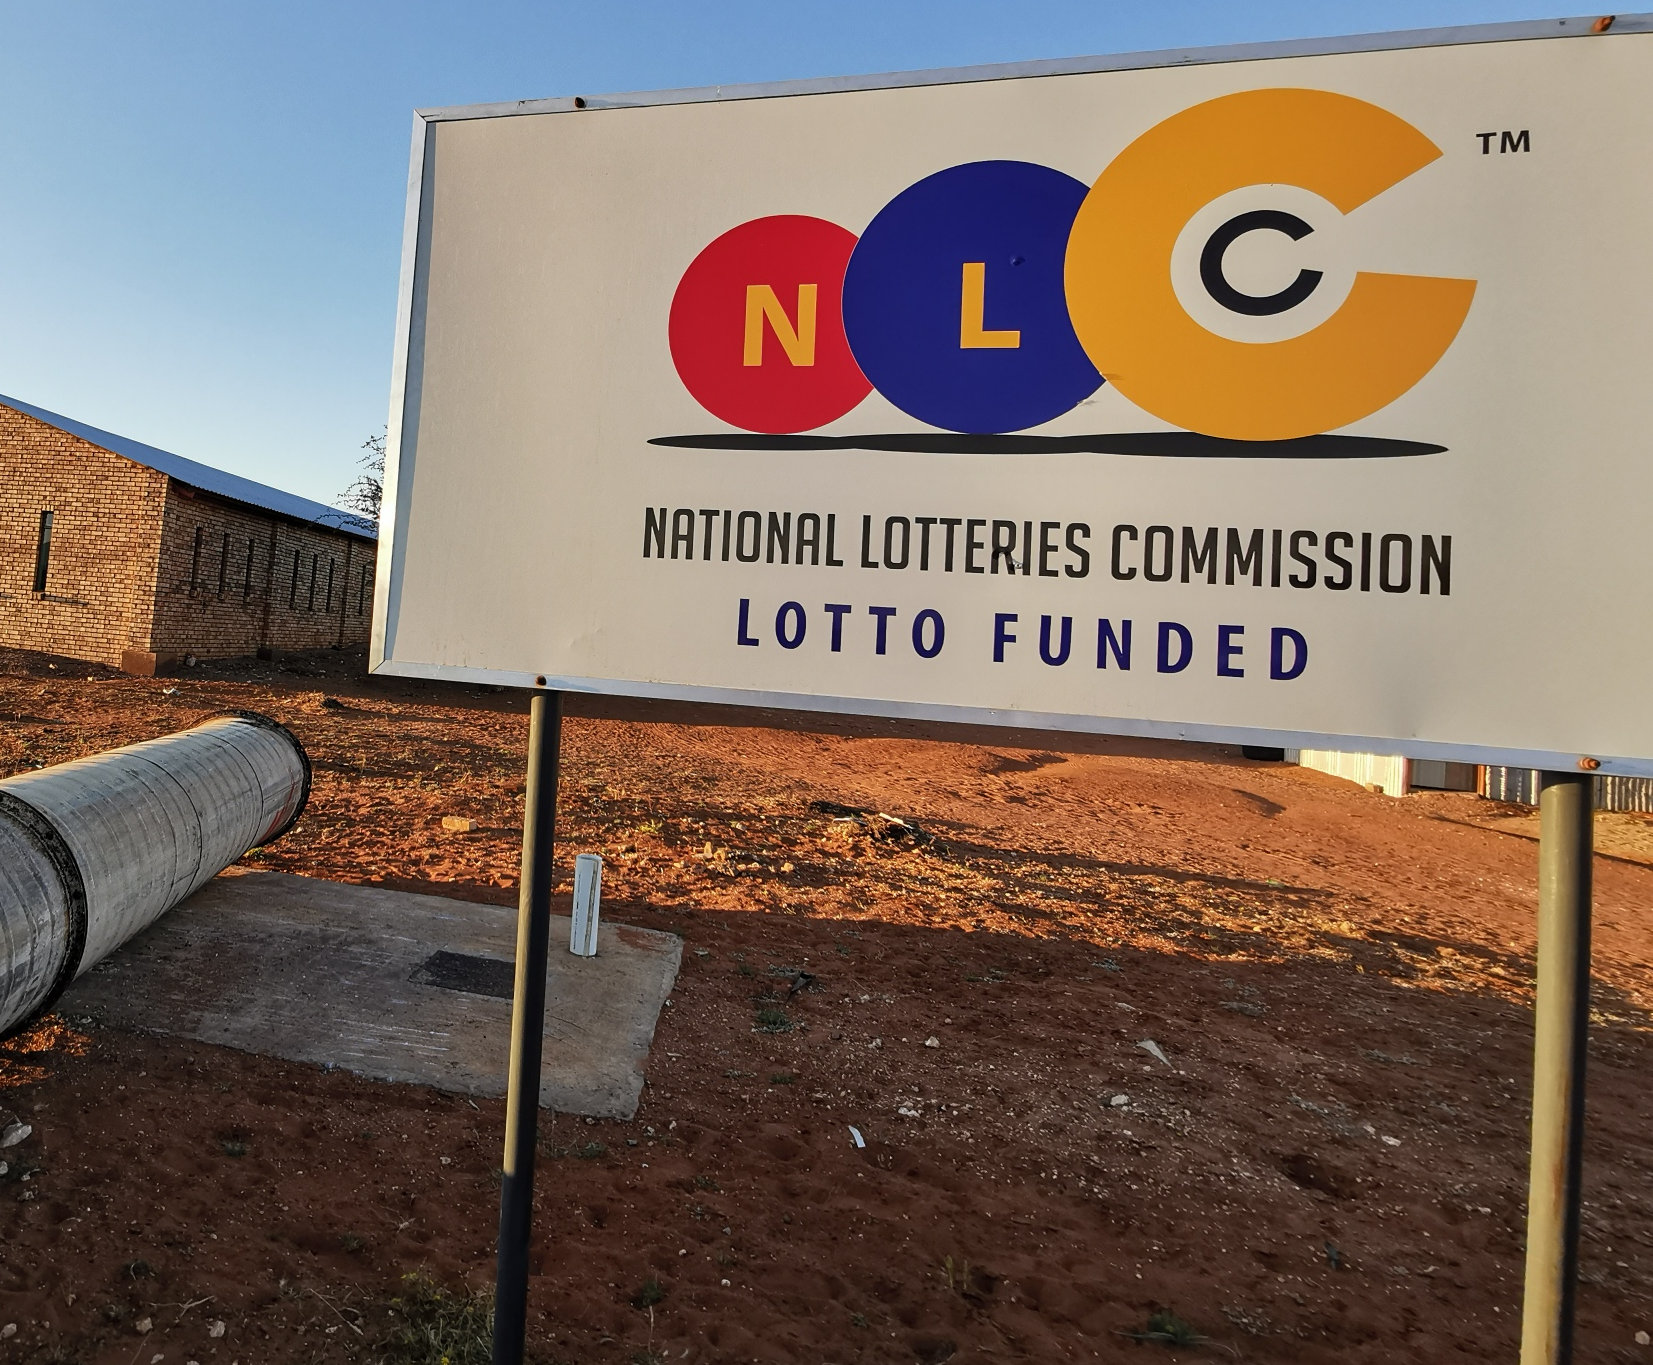 Money from Lottery goes to cousin of National Lotteries Commission boss - Daily Maverick